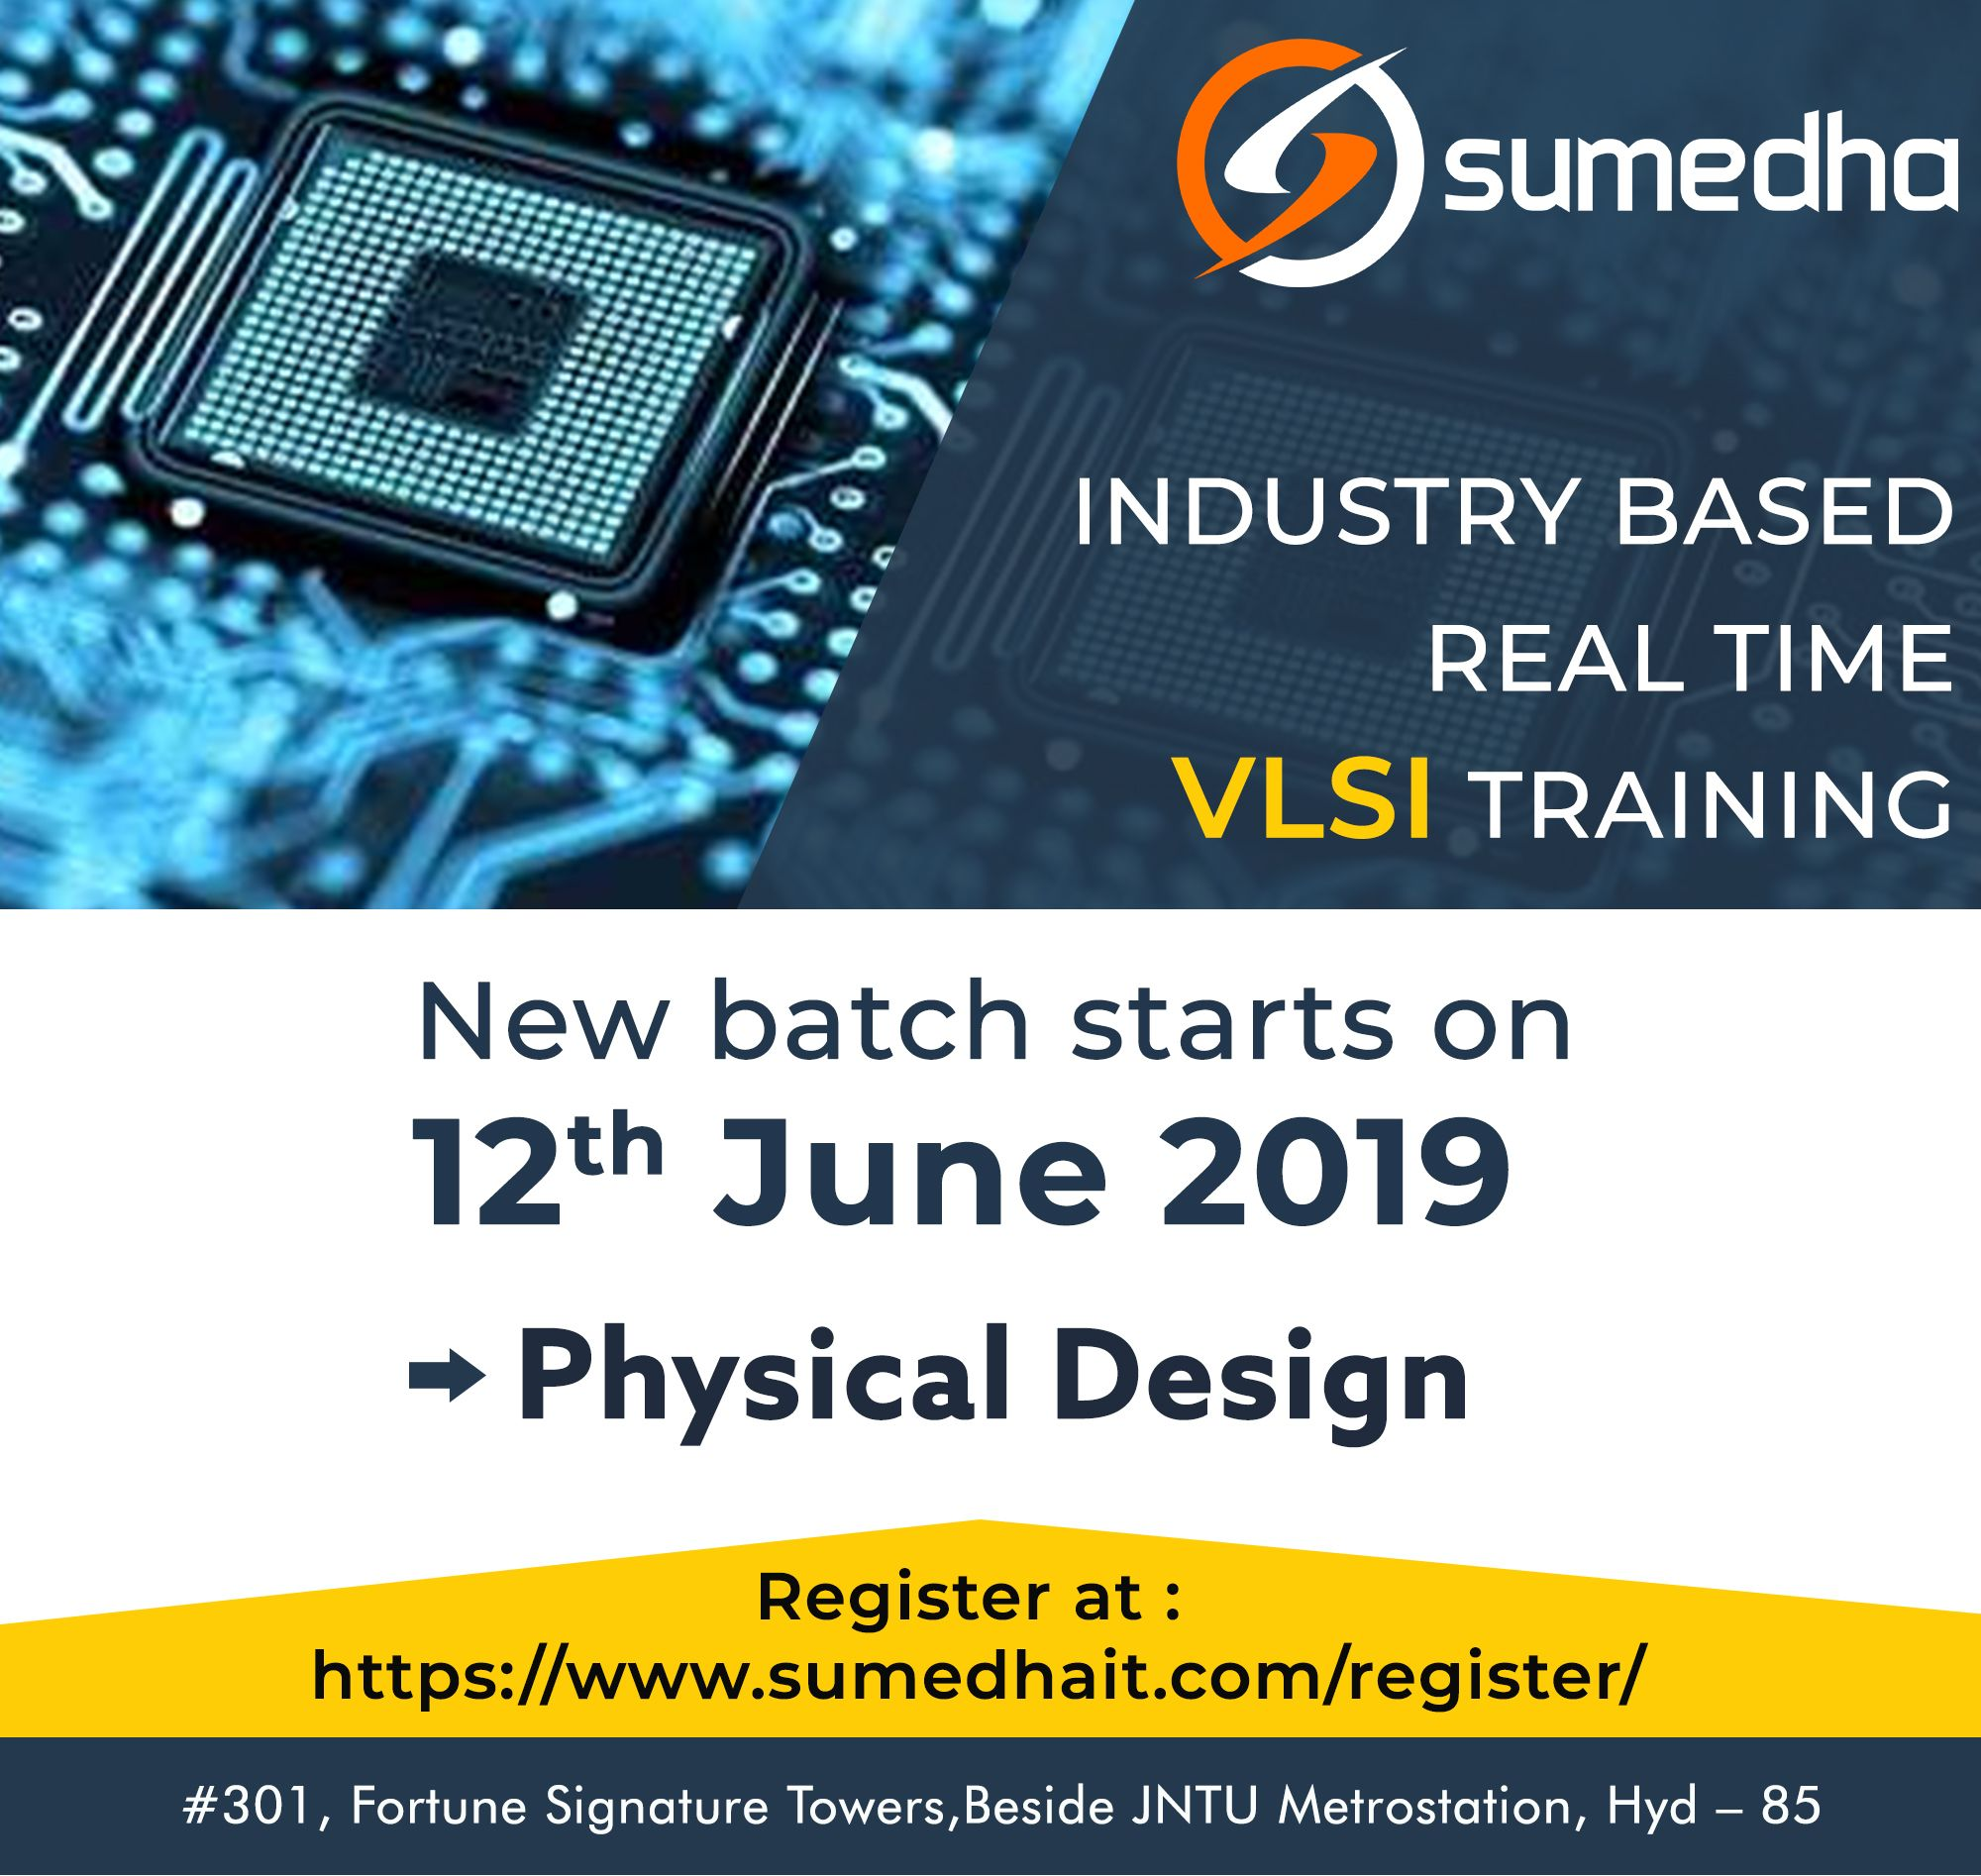 Sumedha Institute Of Technology Is One Of The Best Vlsi And Embedded Systems Training Institute In Hyderabad We Are Formed To Raise The Train Institute System